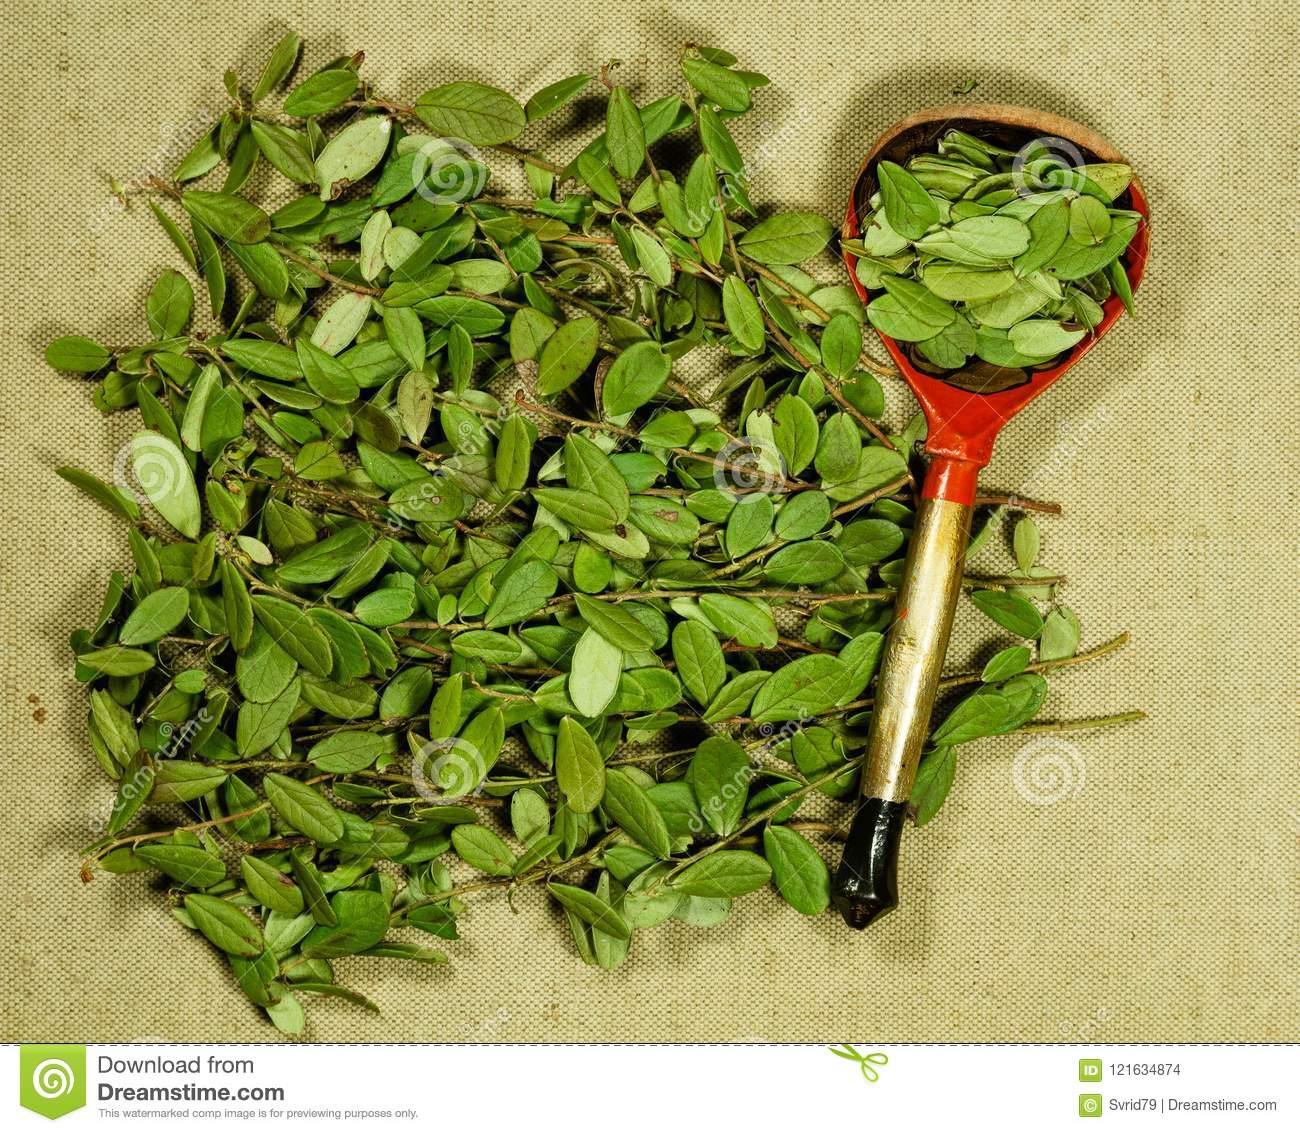 Lingonberry leaves: application in traditional medicine 10